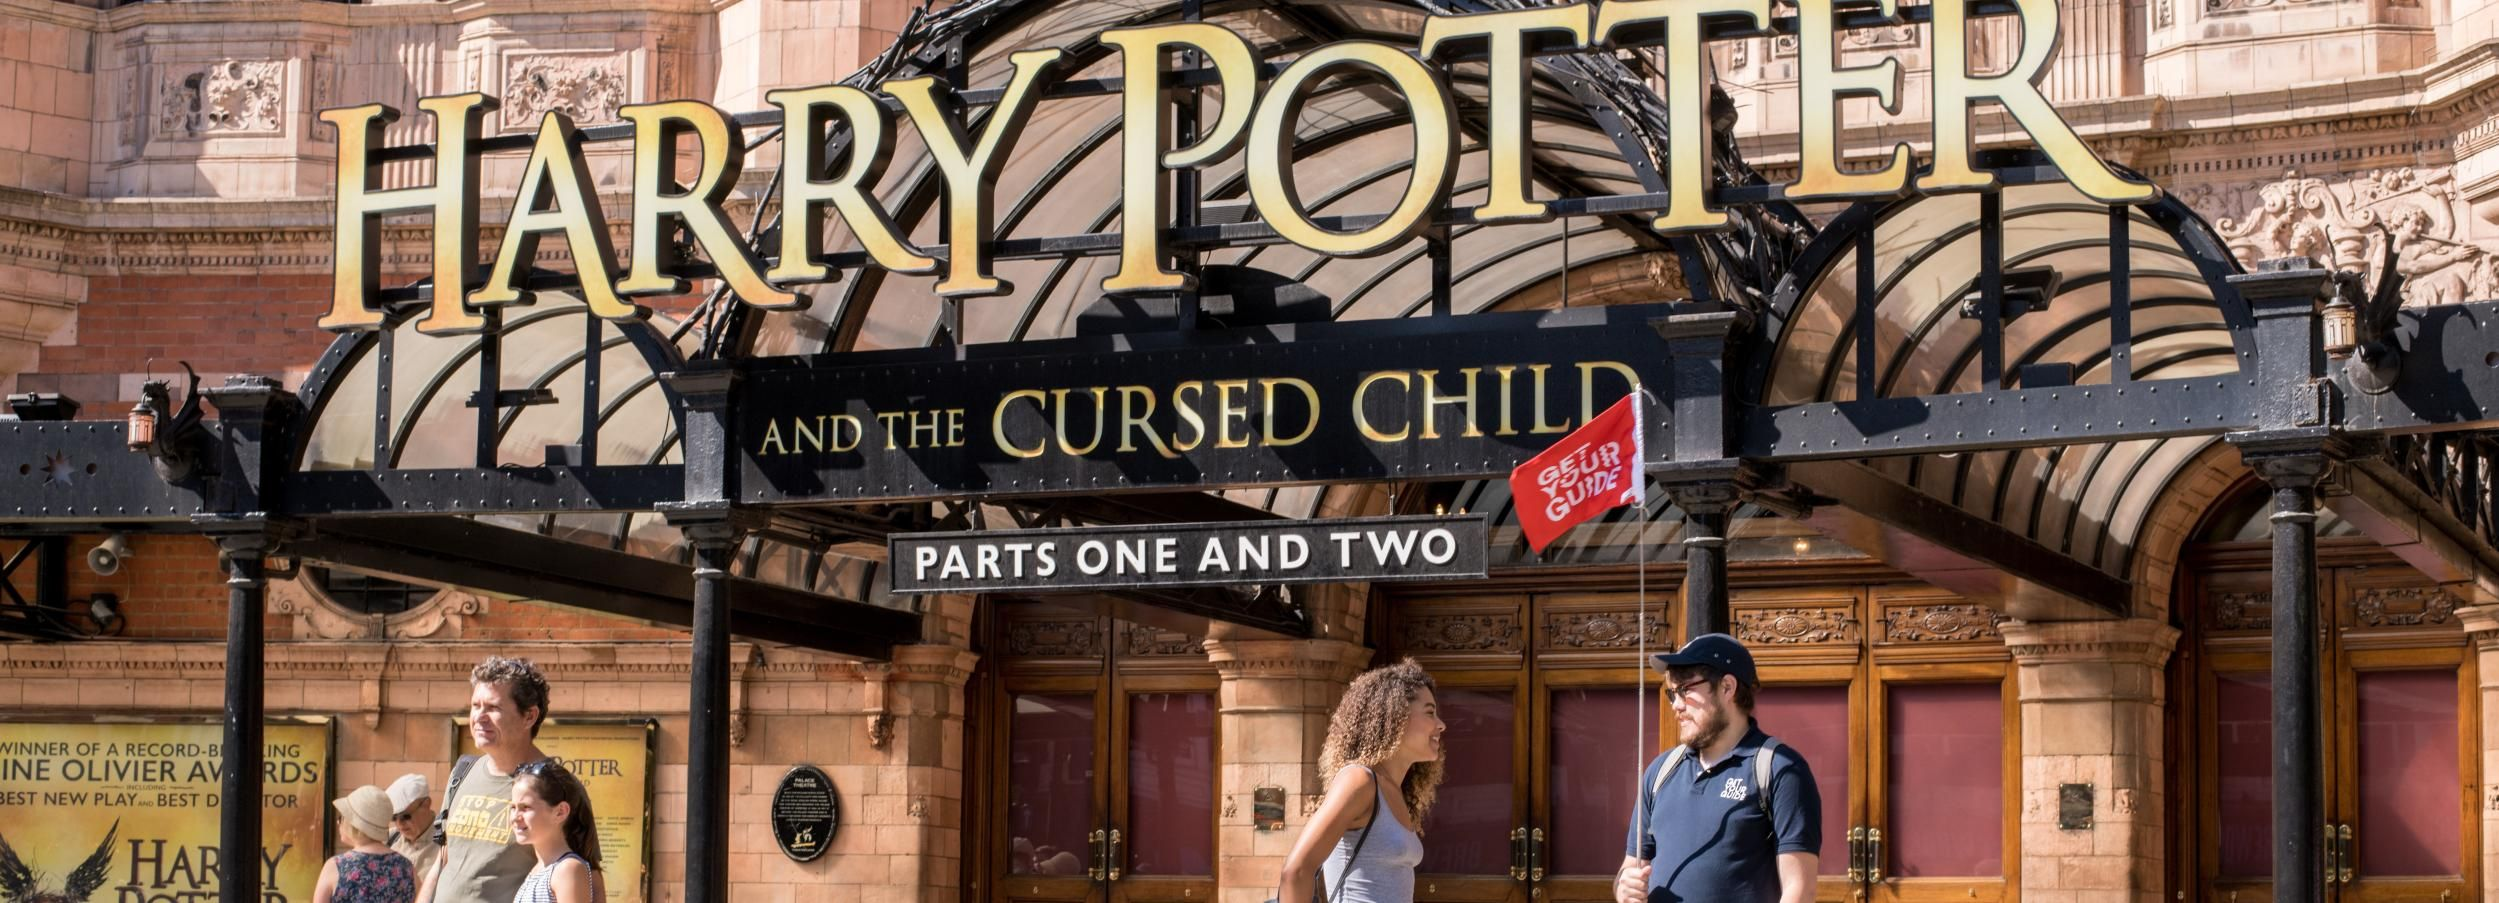 Londra: tour guidato di Harry Potter